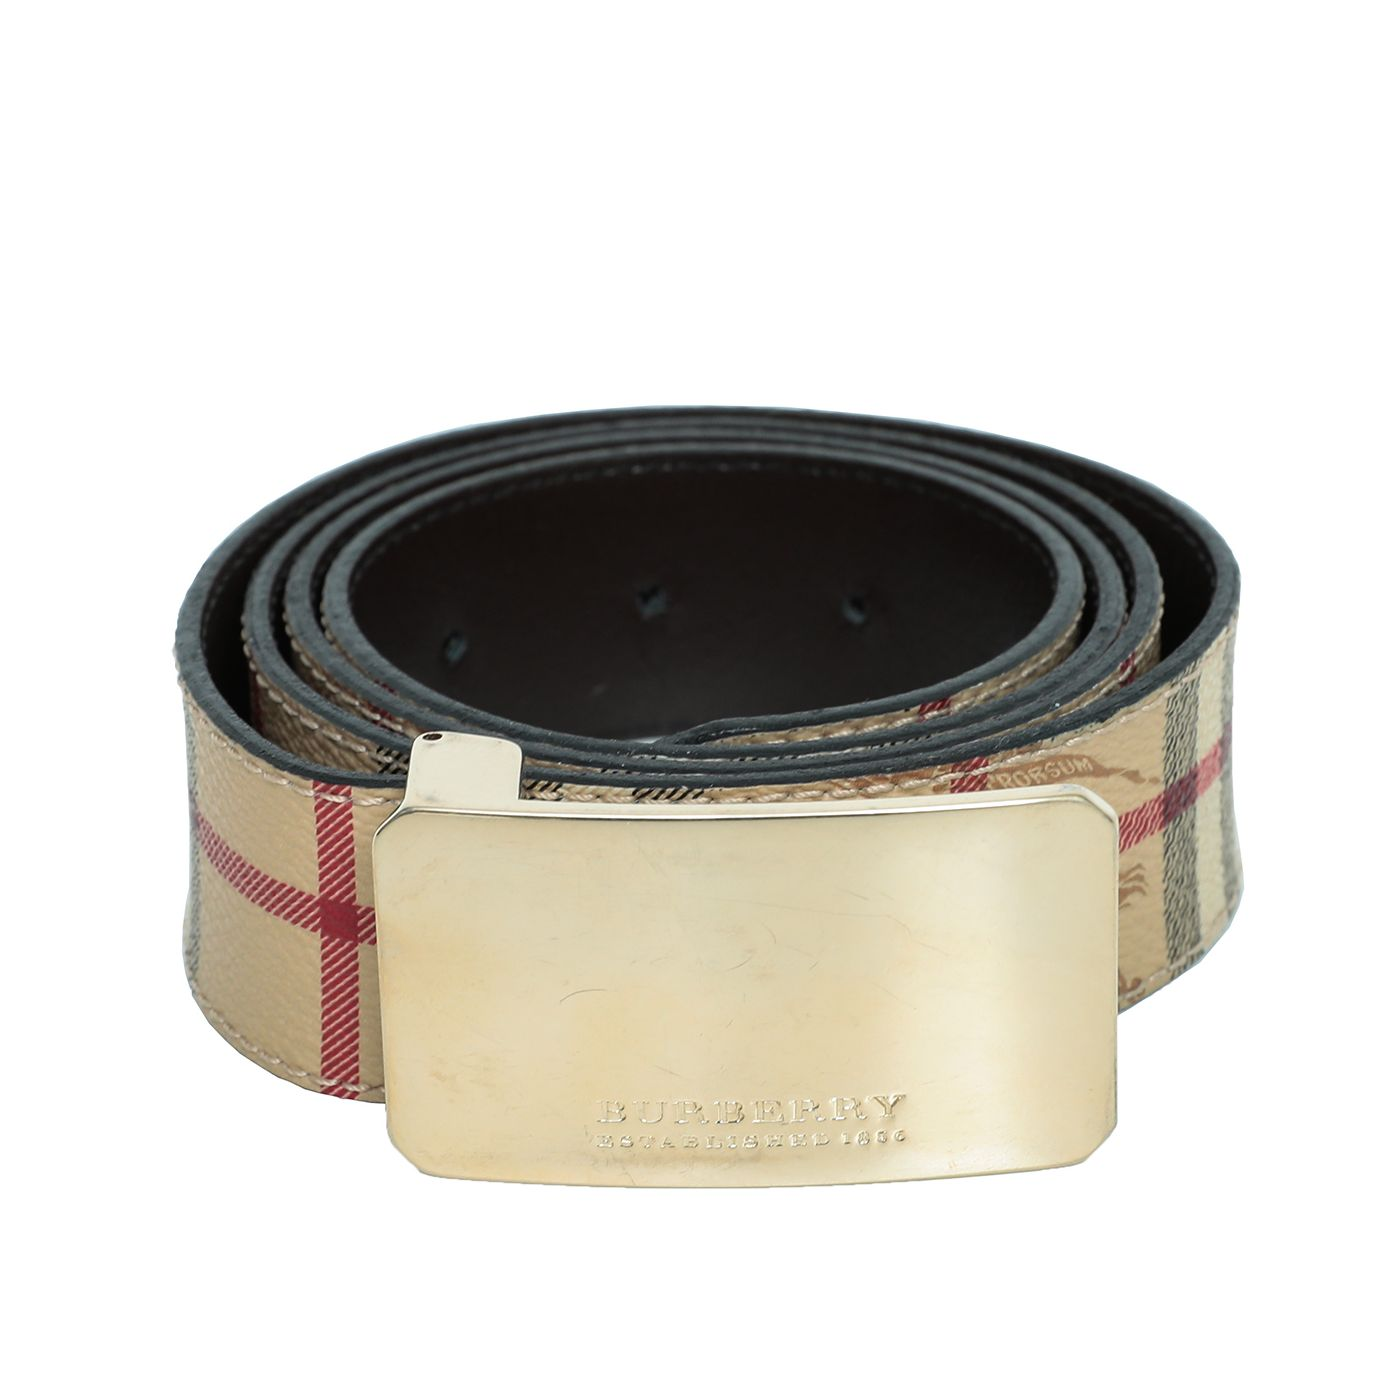 Burberry Beige Haymarket Buckle Belt 40